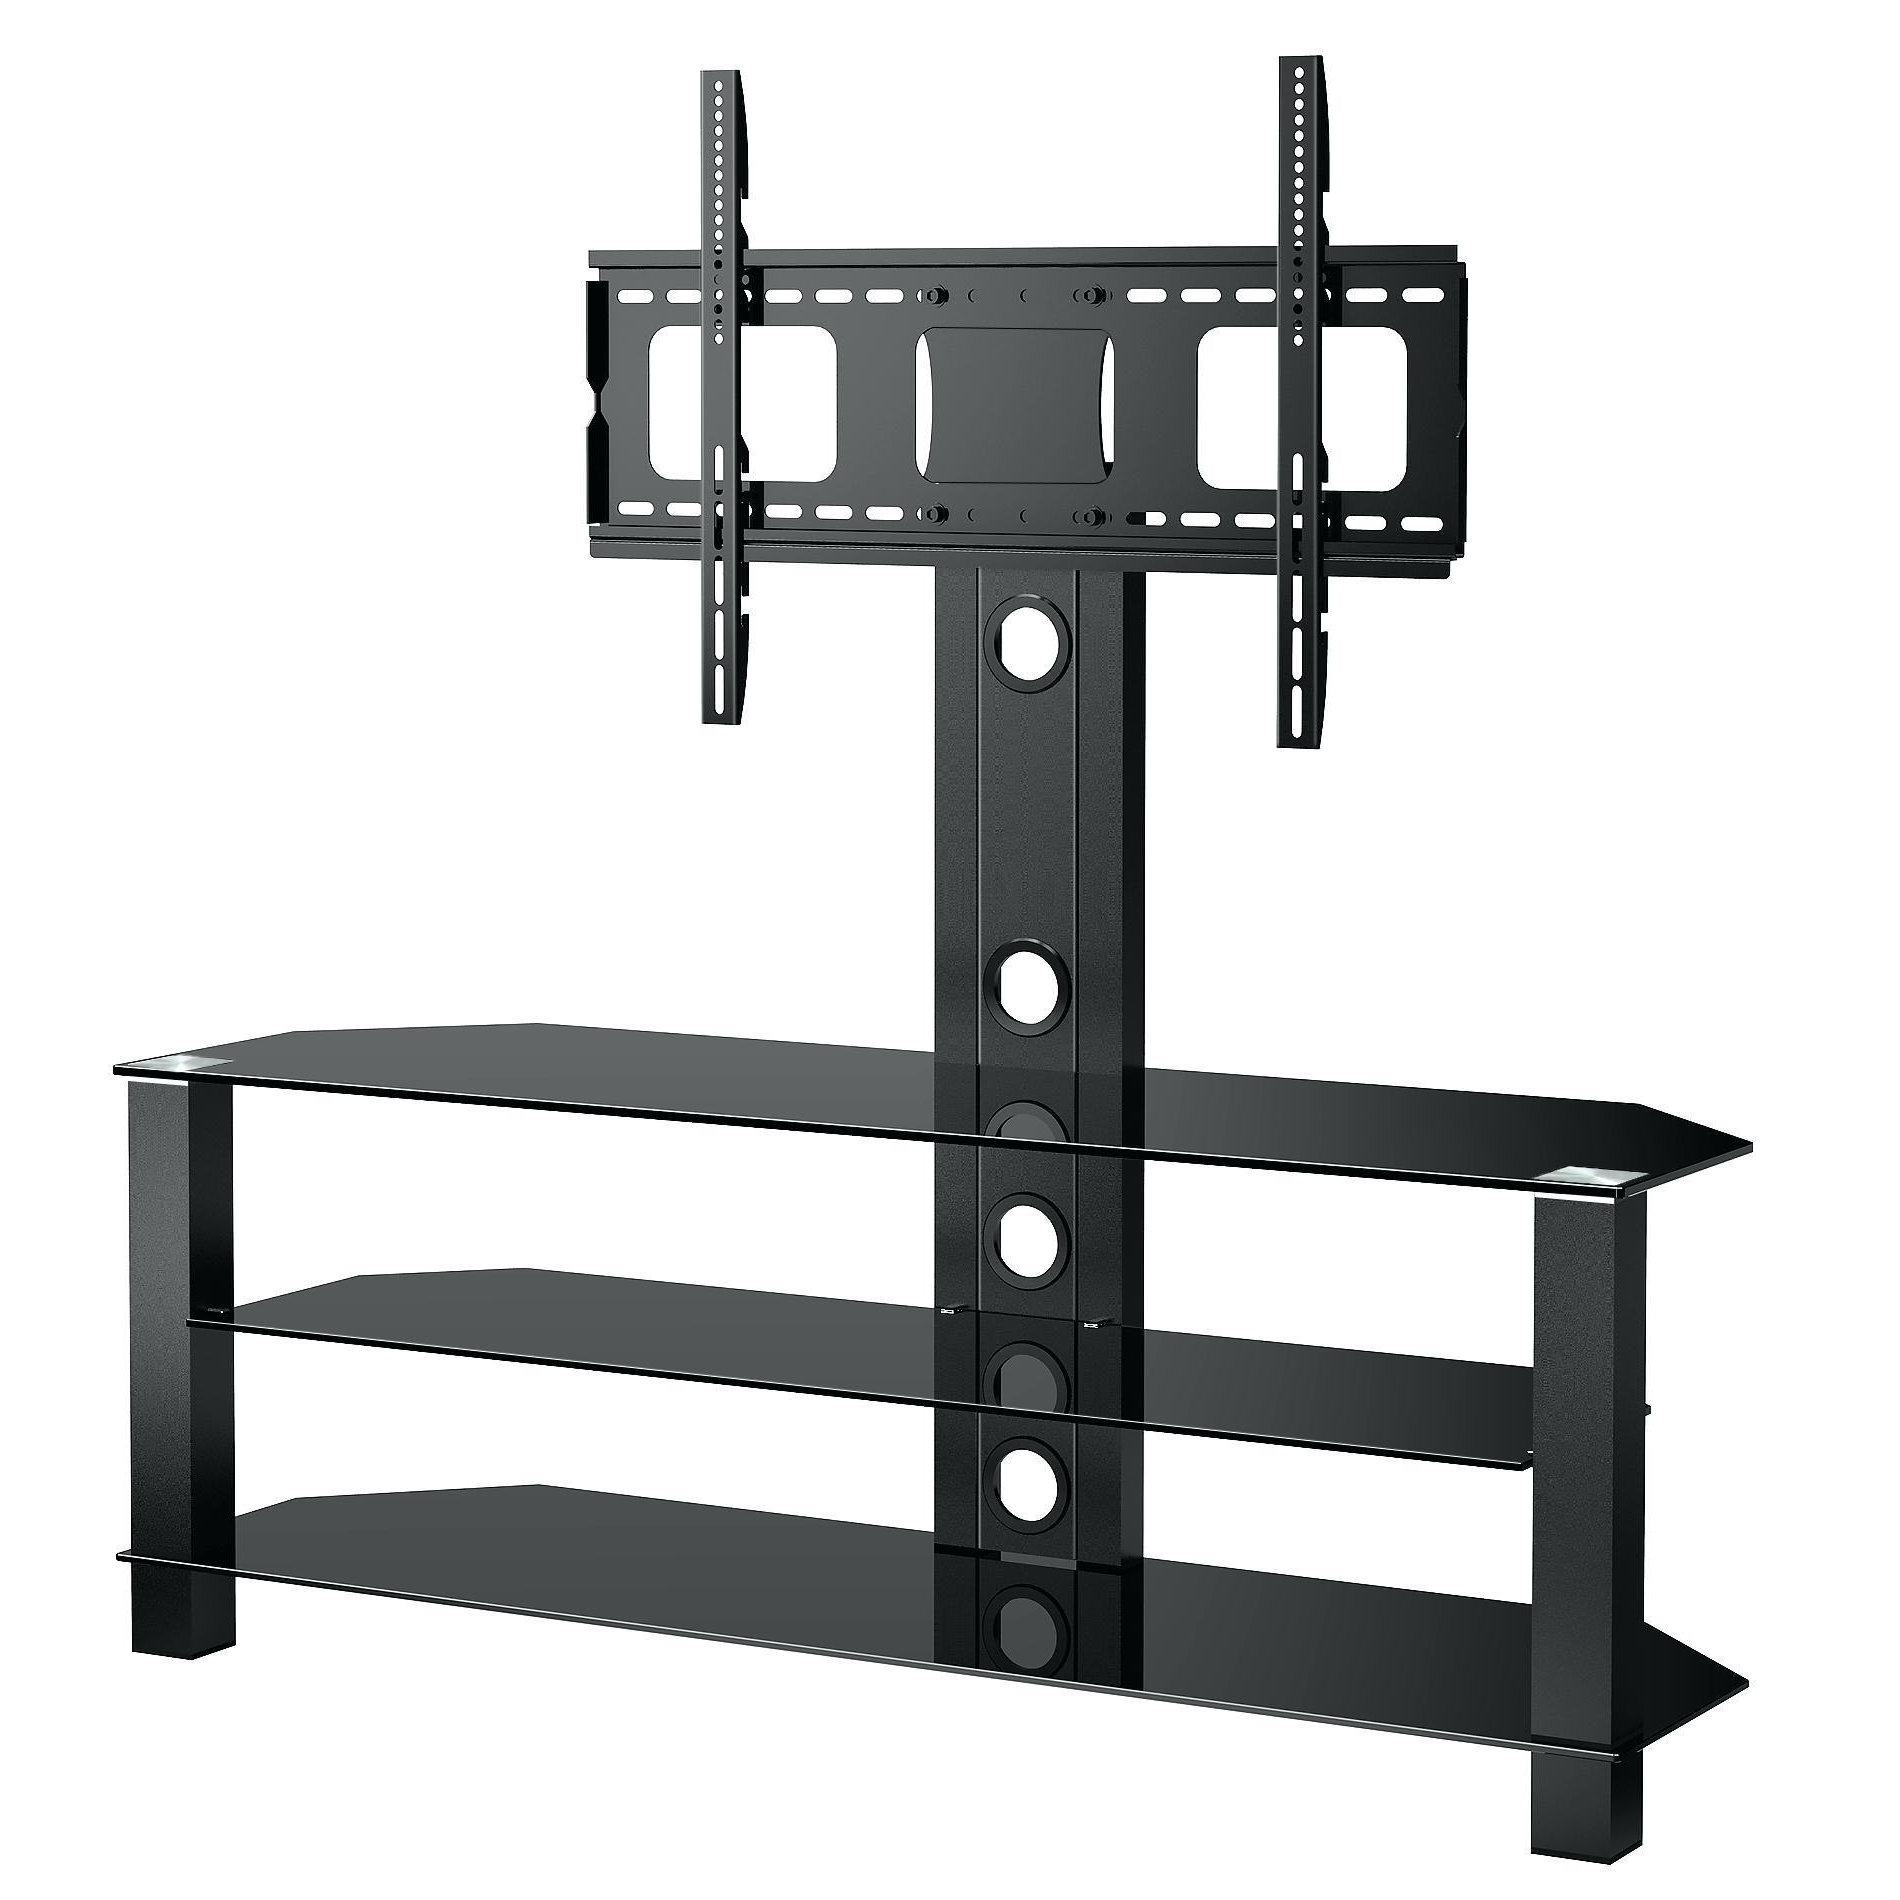 Fancy Tv Stands Throughout Preferred Inspiring Small Tv Stands Fancy Small Tv Stands For Bedroom And Tv (View 7 of 20)